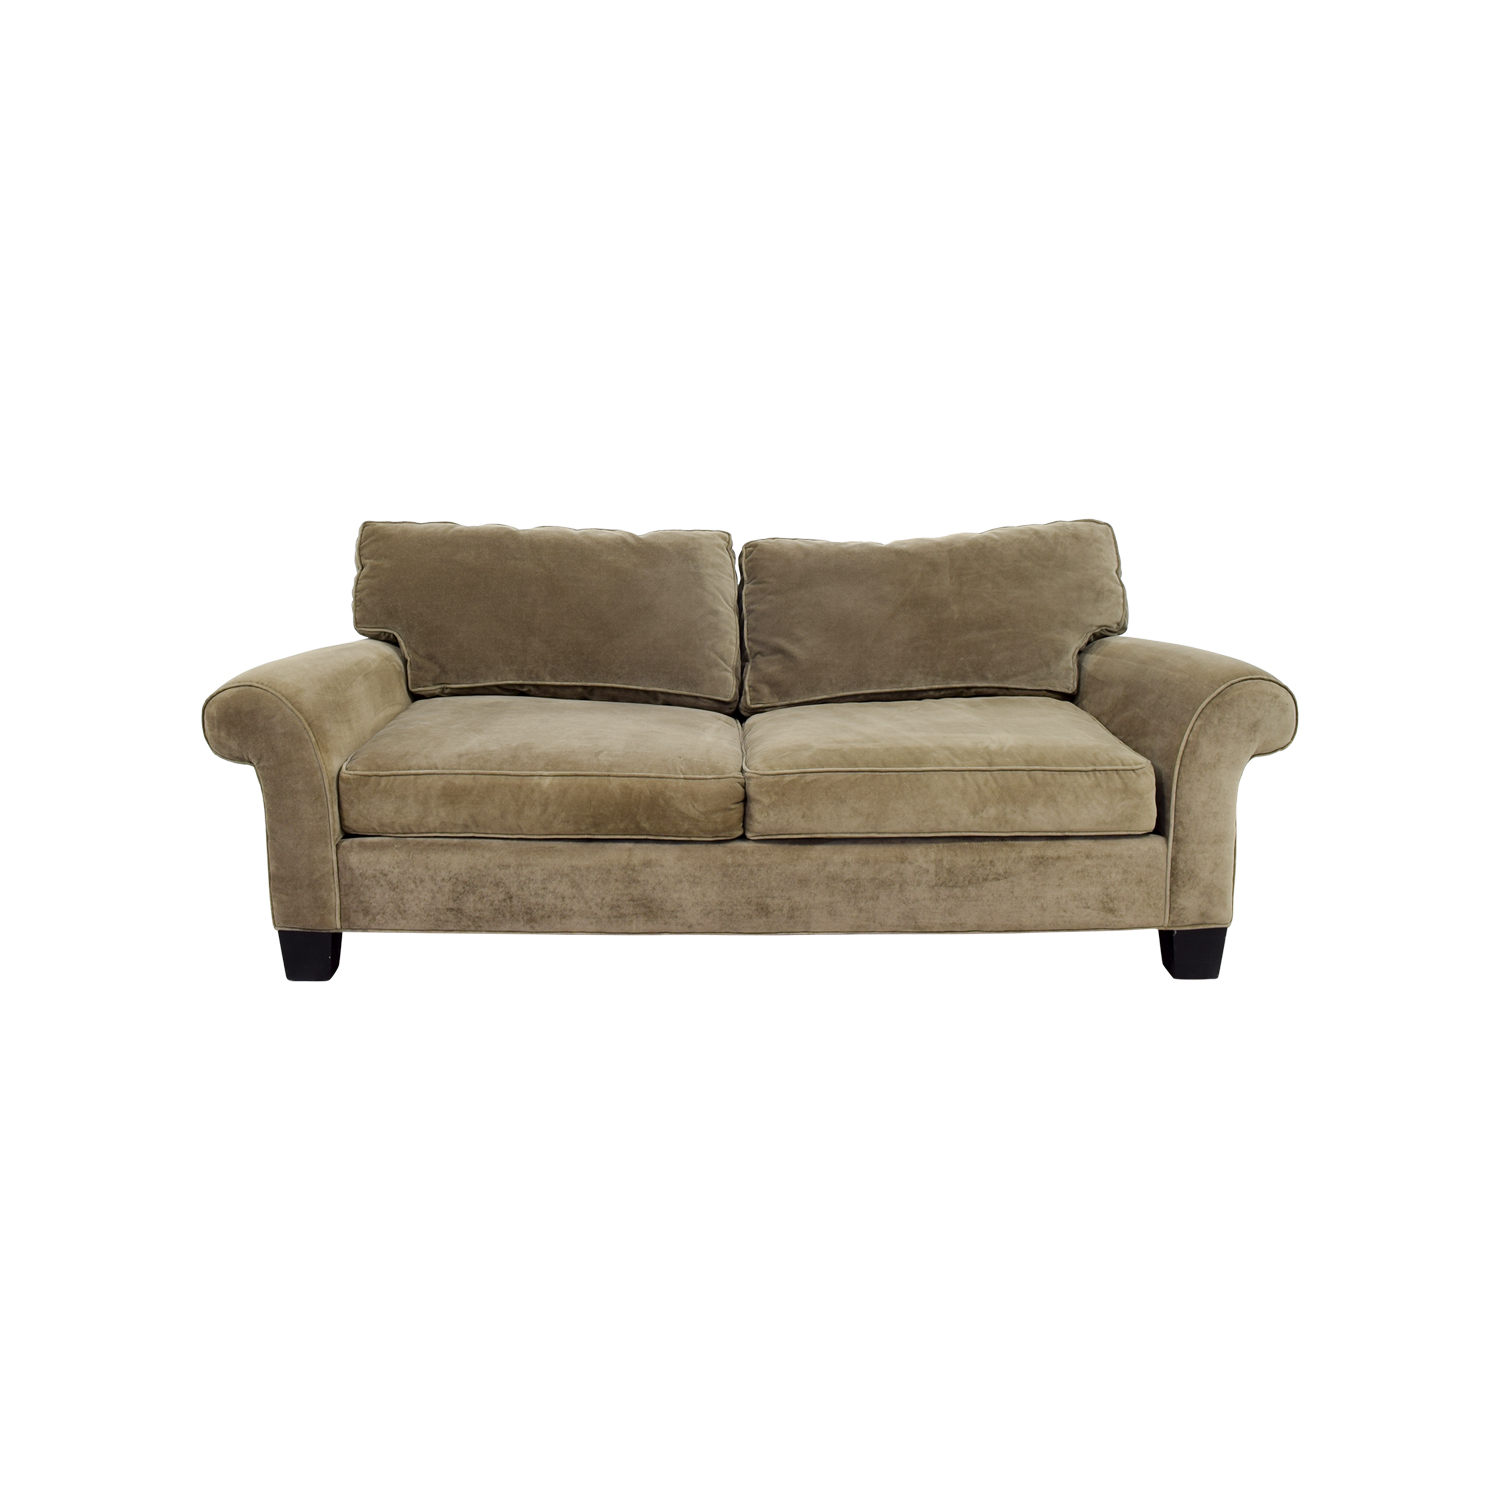 mitc gold and bob williams sofa leather recliner sets 58 off max home furniture macy 39s chloe tufted sofas